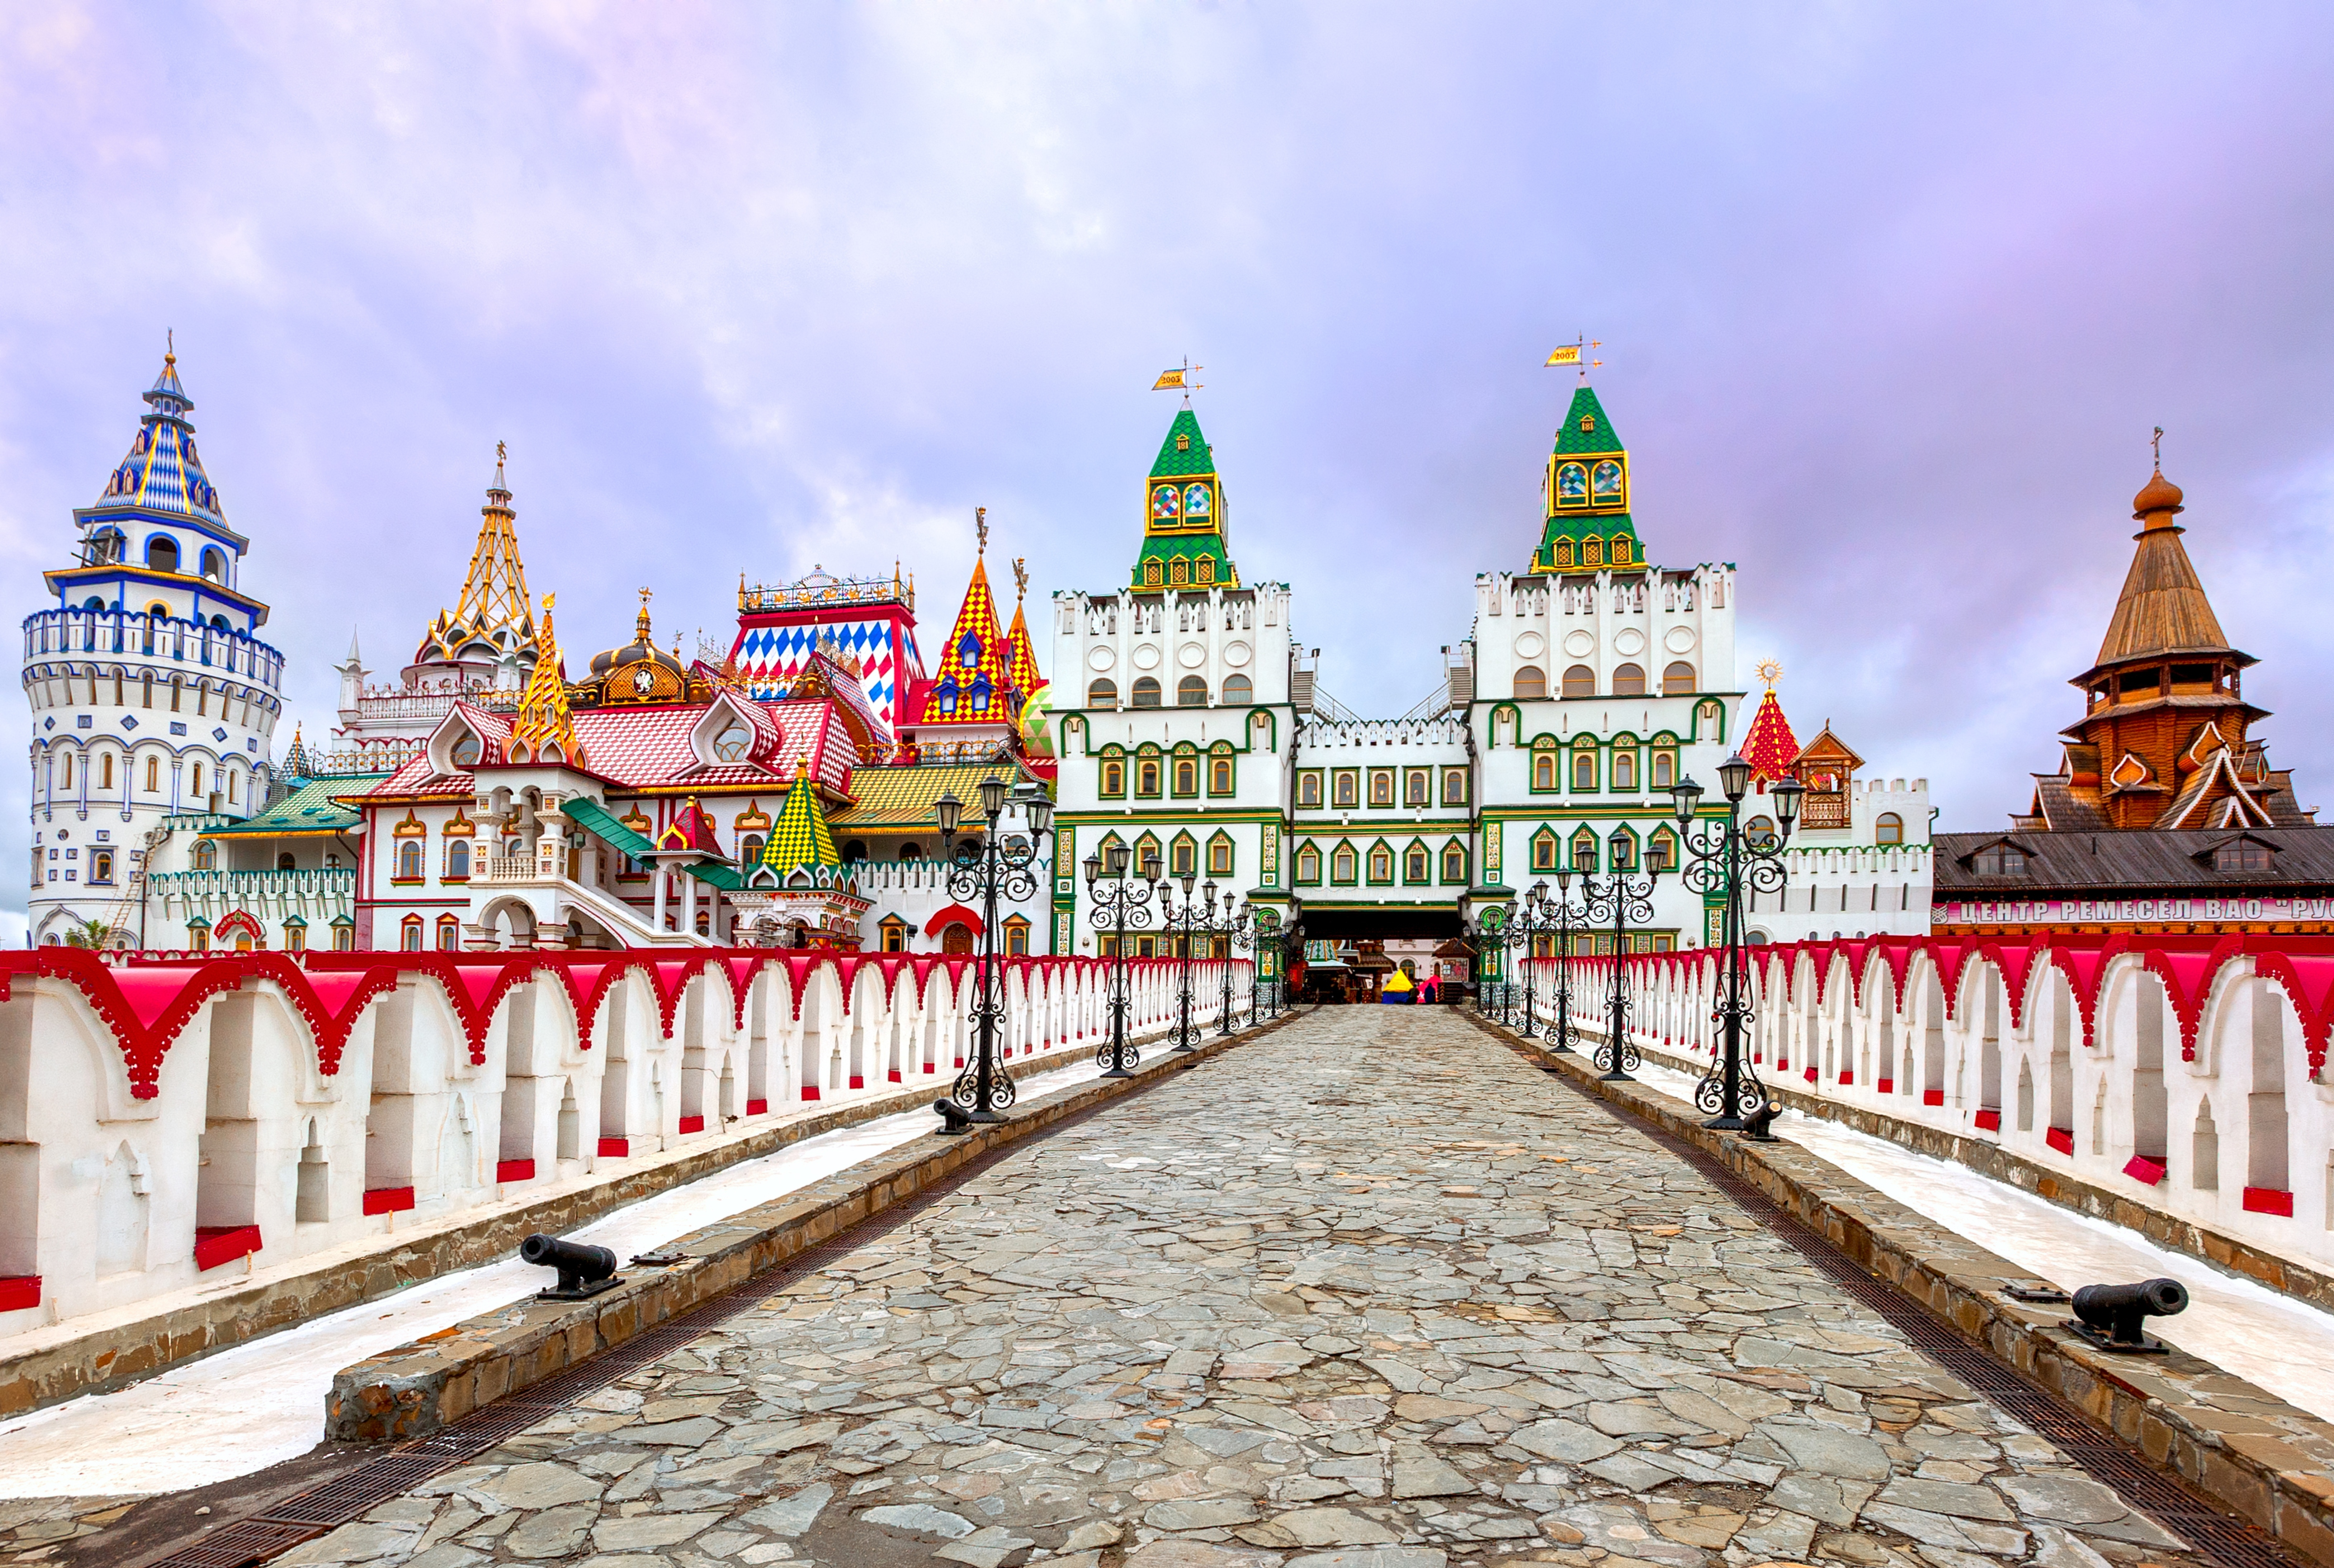 6 Moscow Kremlin HD Wallpapers  Backgrounds  Wallpaper Abyss